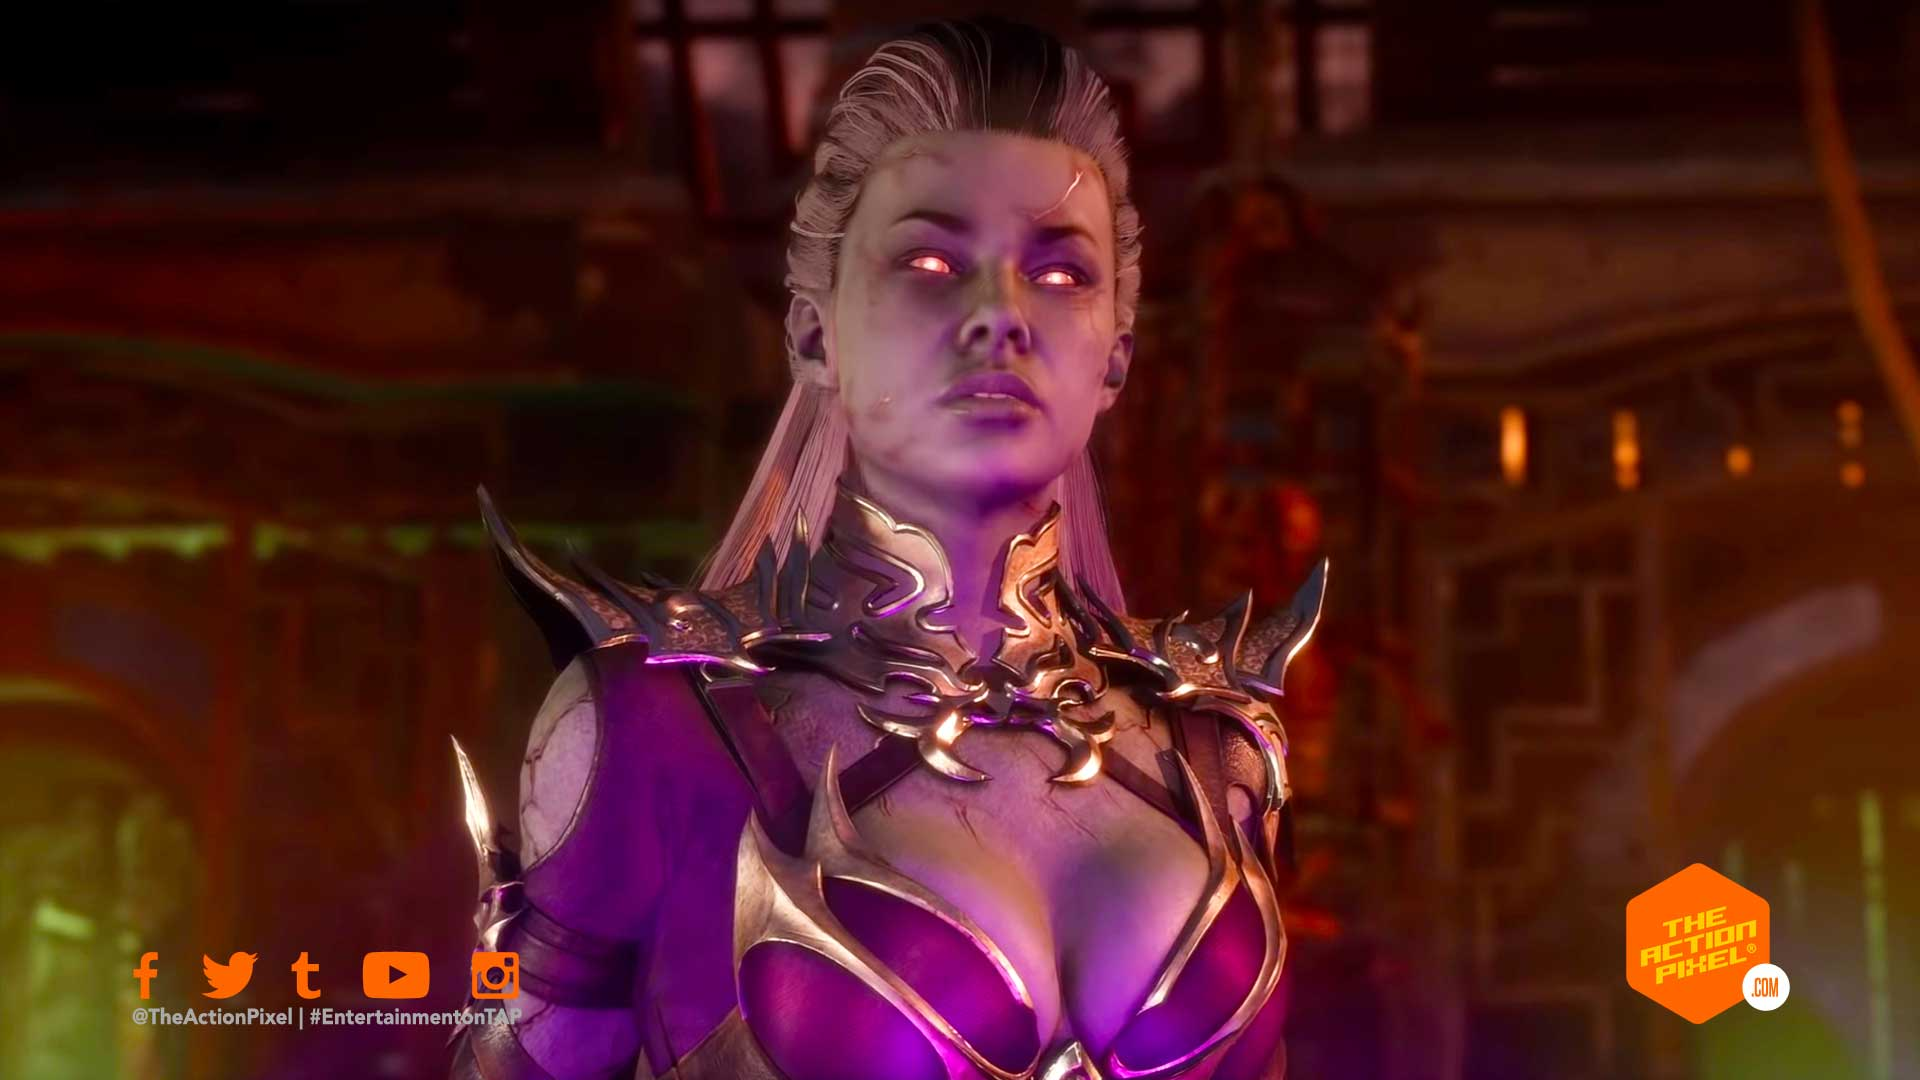 sindel,mortal kombat, mortal kombat 11, kombat pack, sindel gameplay trailer, mk11, netherrealm studios, the action pixel, entertainment on tap,